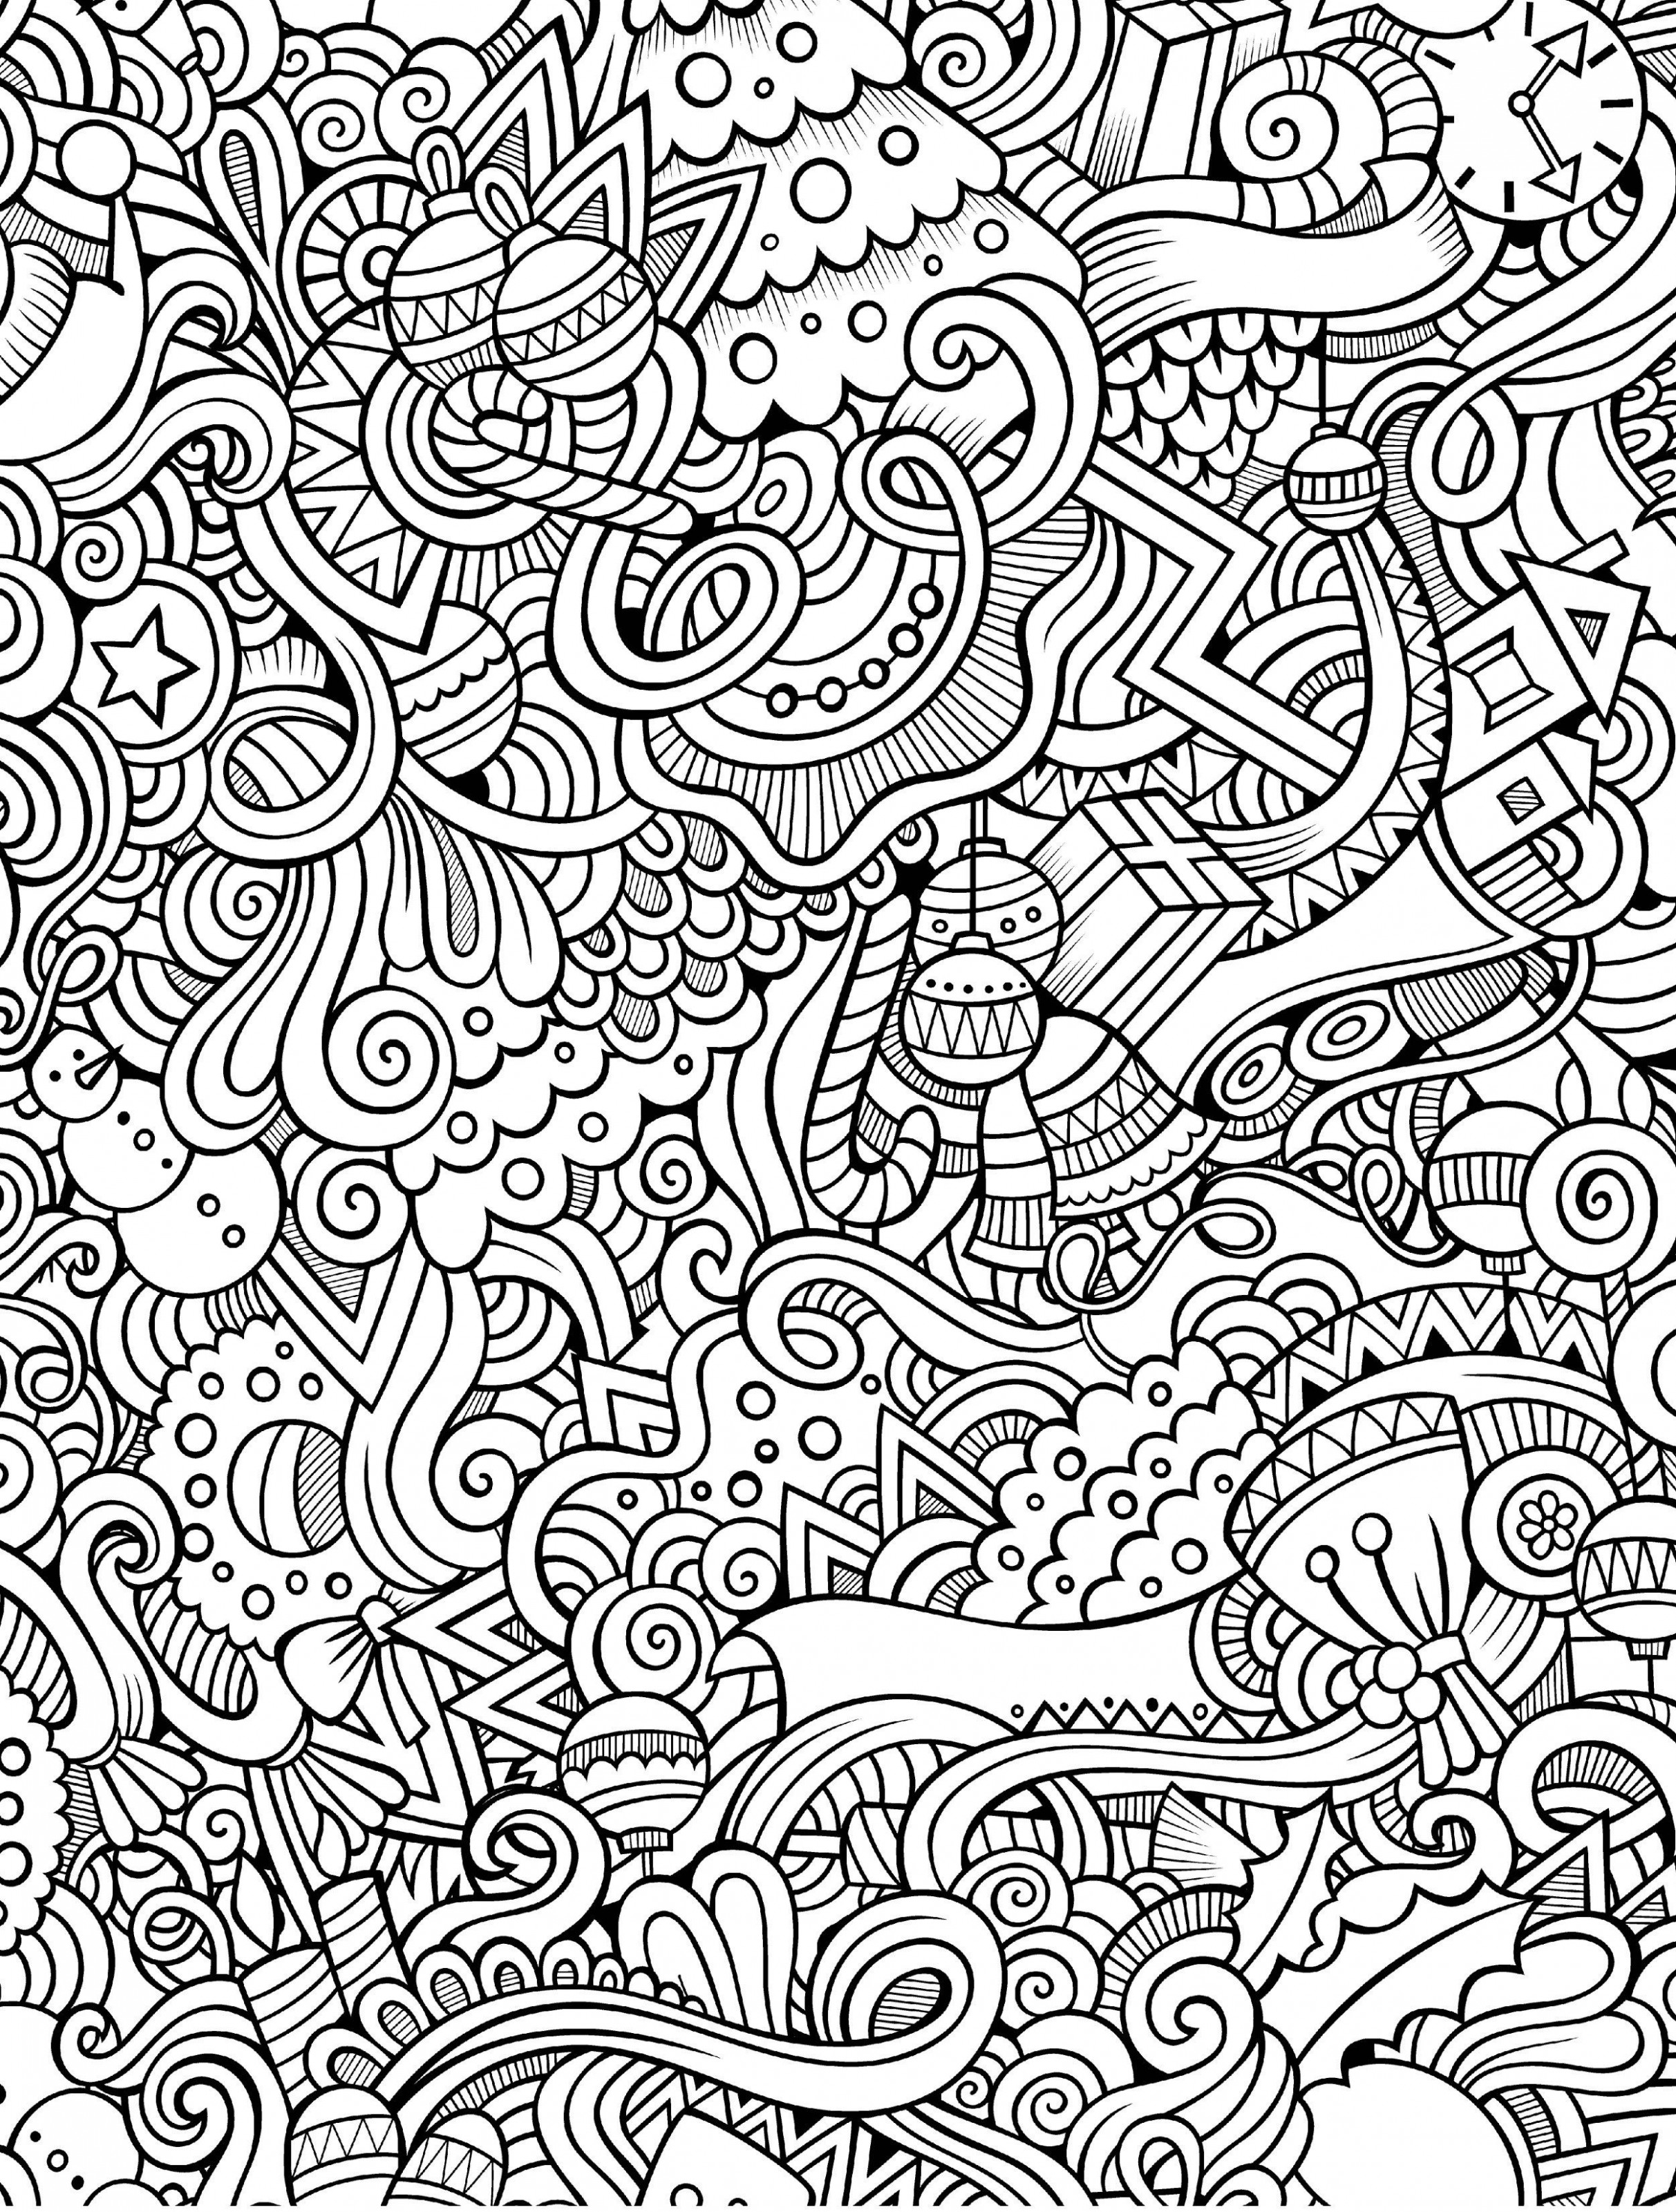 18 Free Printable Holiday Adult Coloring Pages | Coloring pages ...